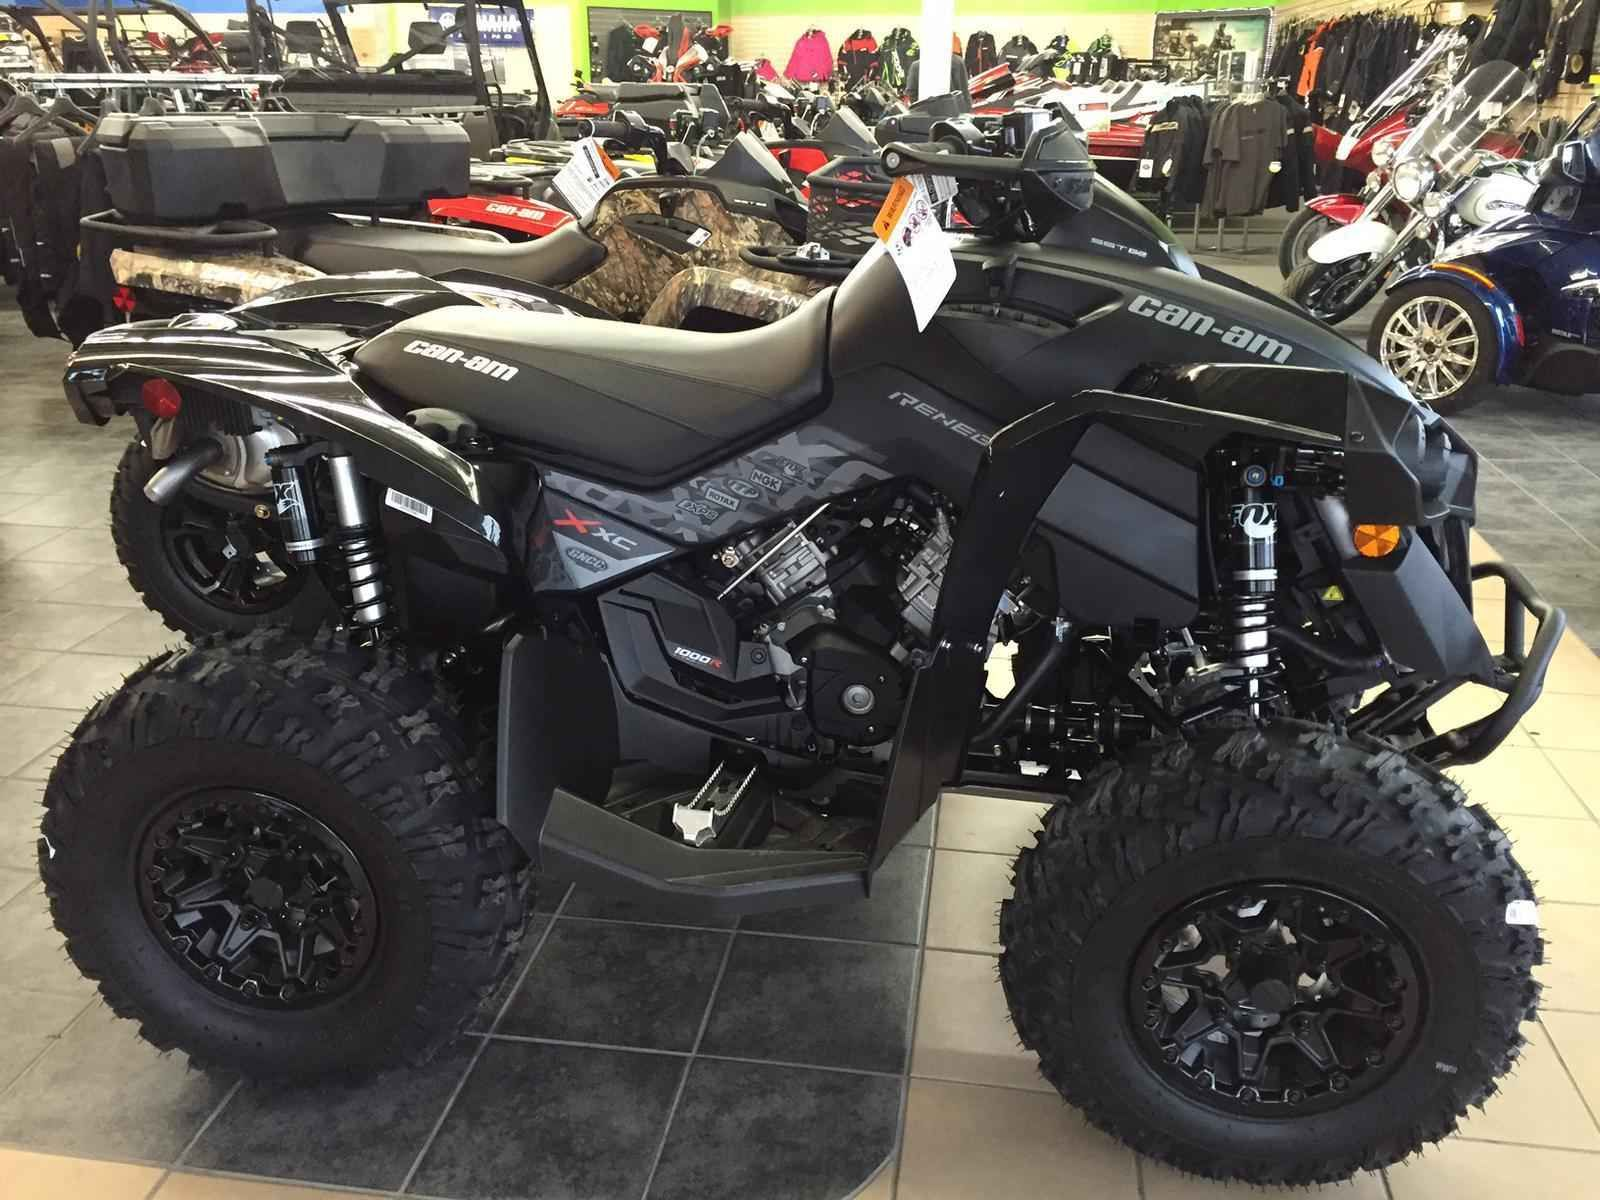 New 2017 Can Am Renegade 1000 X Xc Atvs For Sale In Minnesota 2017 Can Am Renegade 1000 X Xc Come In And Check This Bad Boy Out Can Am Atv Can Am Atv